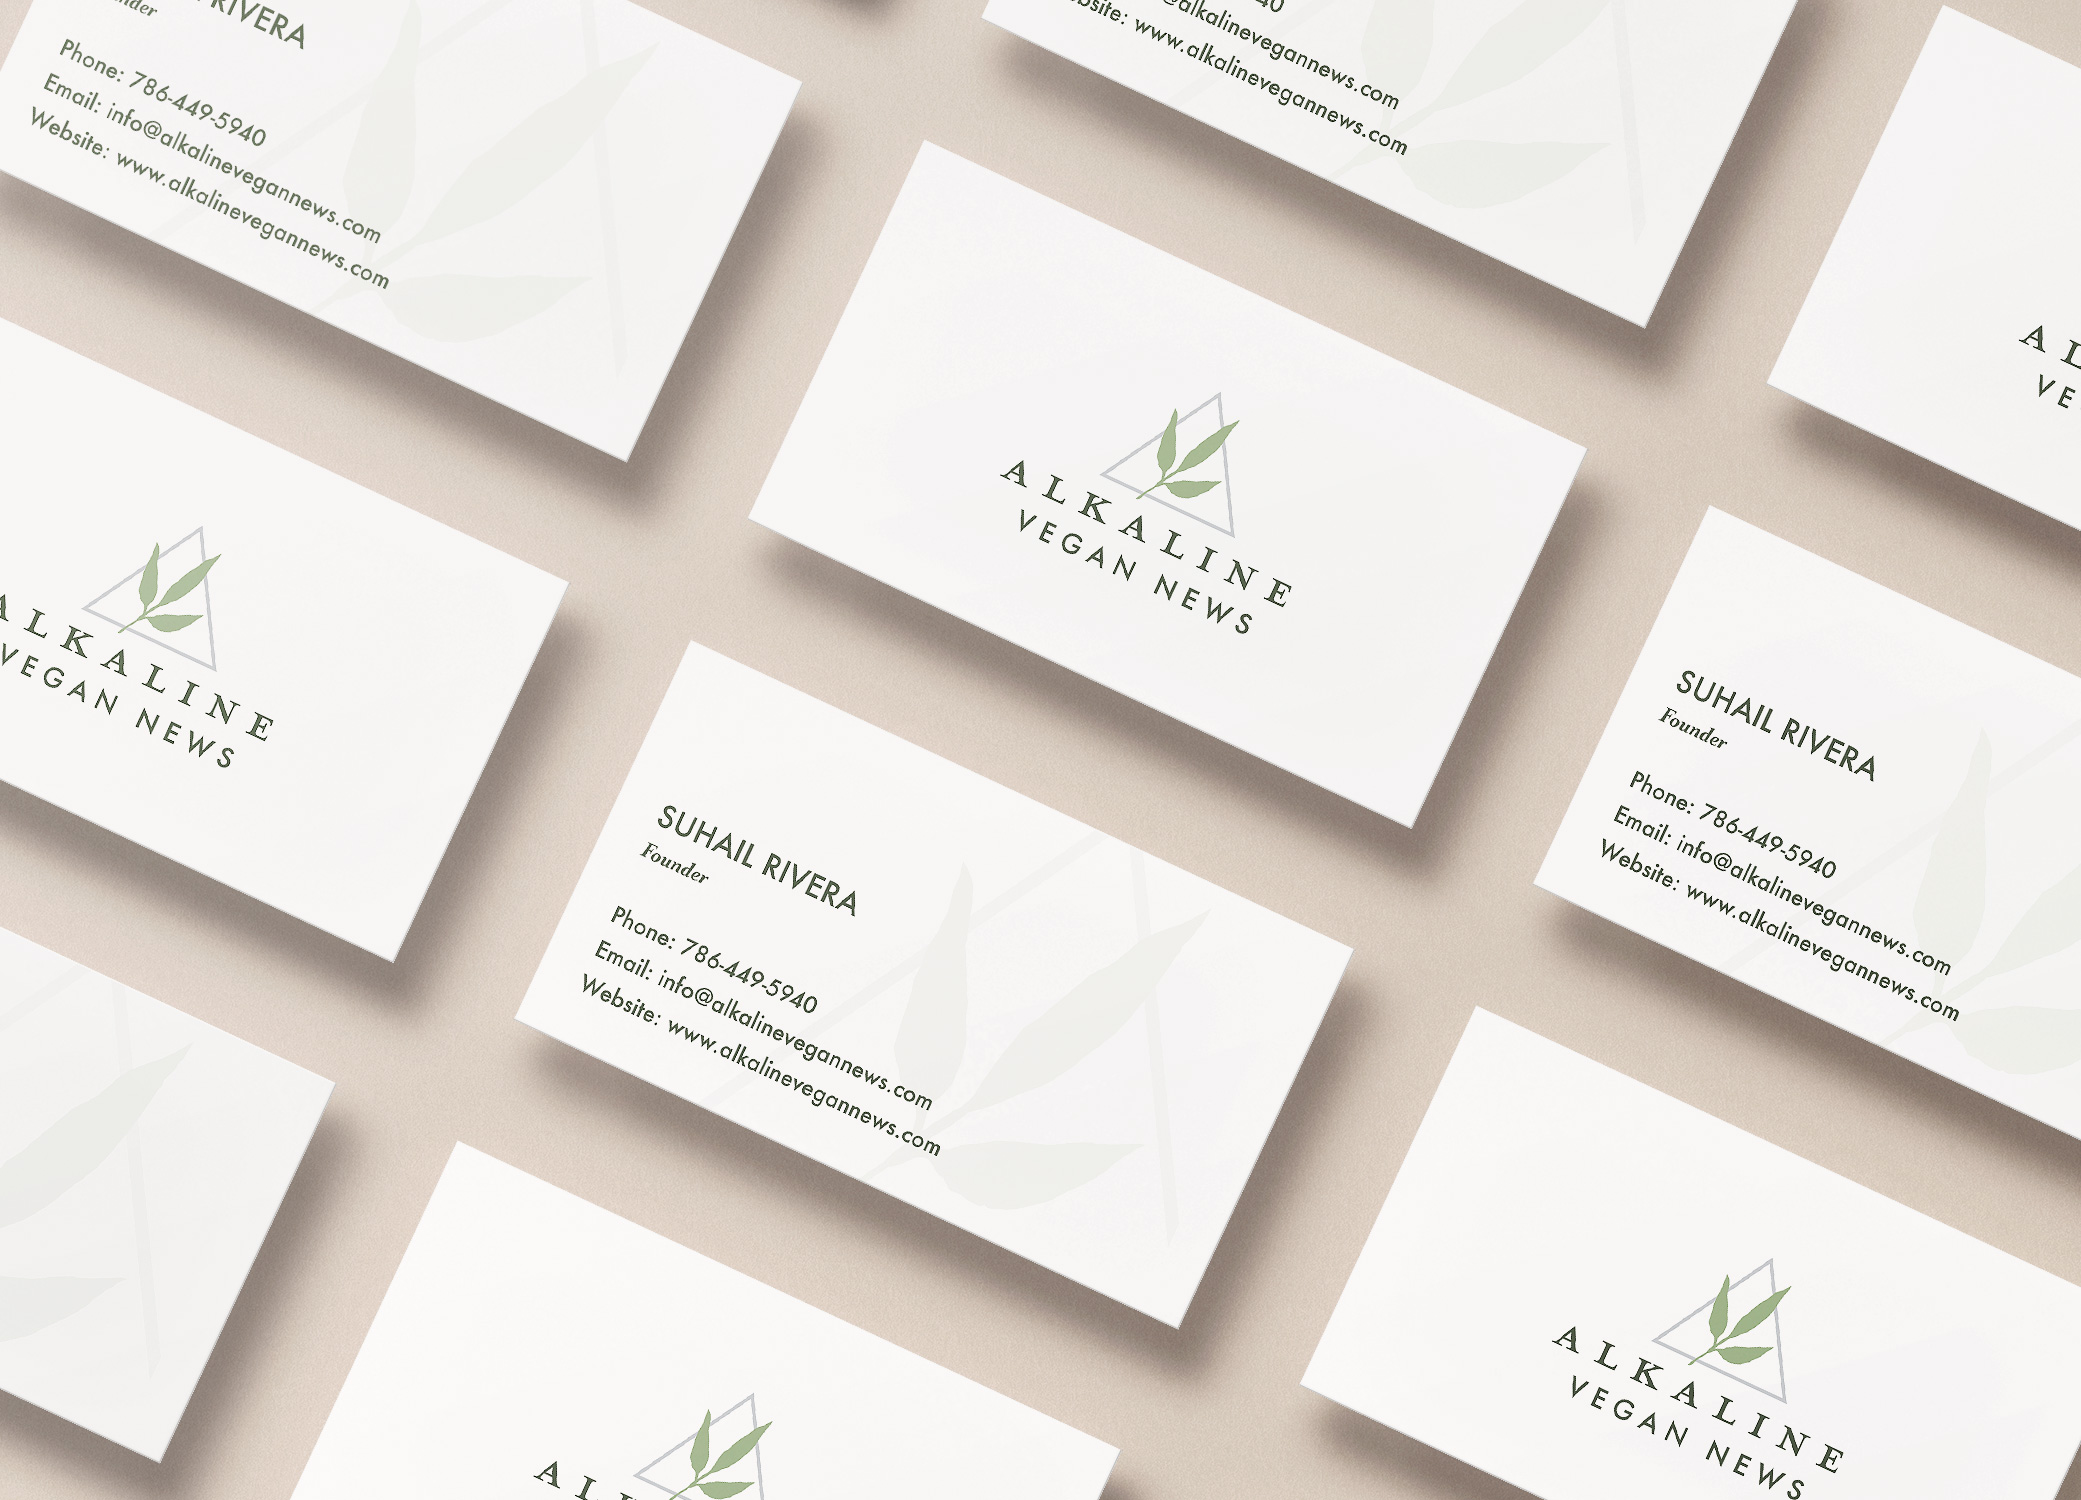 Alkaline Vegan News brand identity showing business card design with leaf logo on the front and watermark on the back.